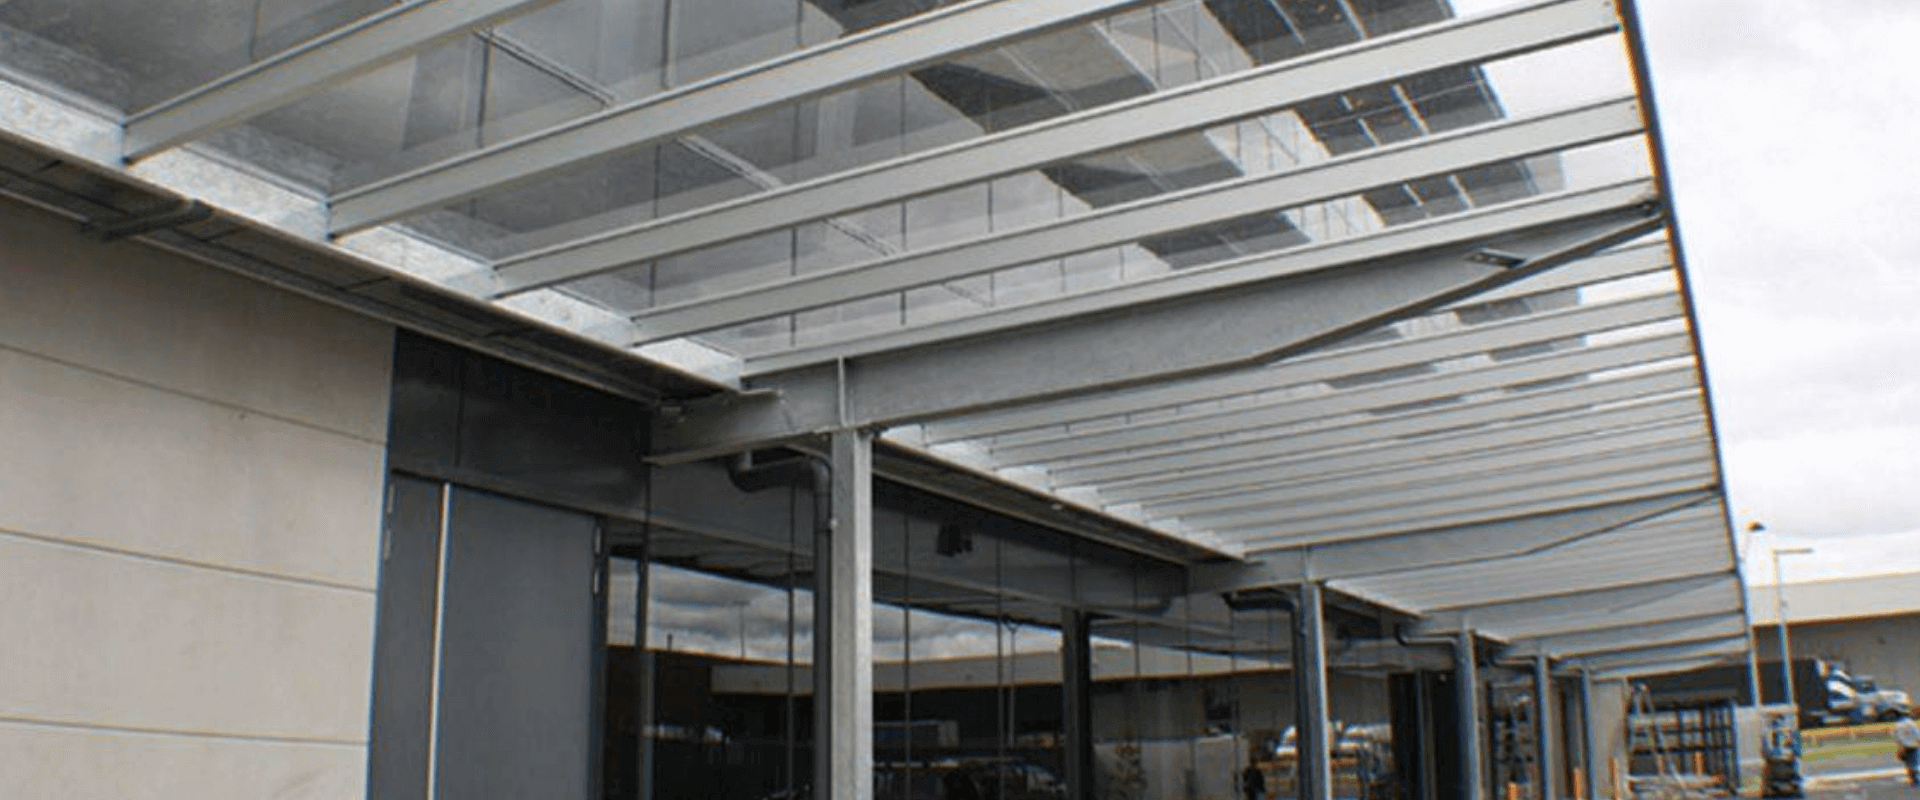 canopy sheet, canopy sheets, polycarbonate sheet canopy